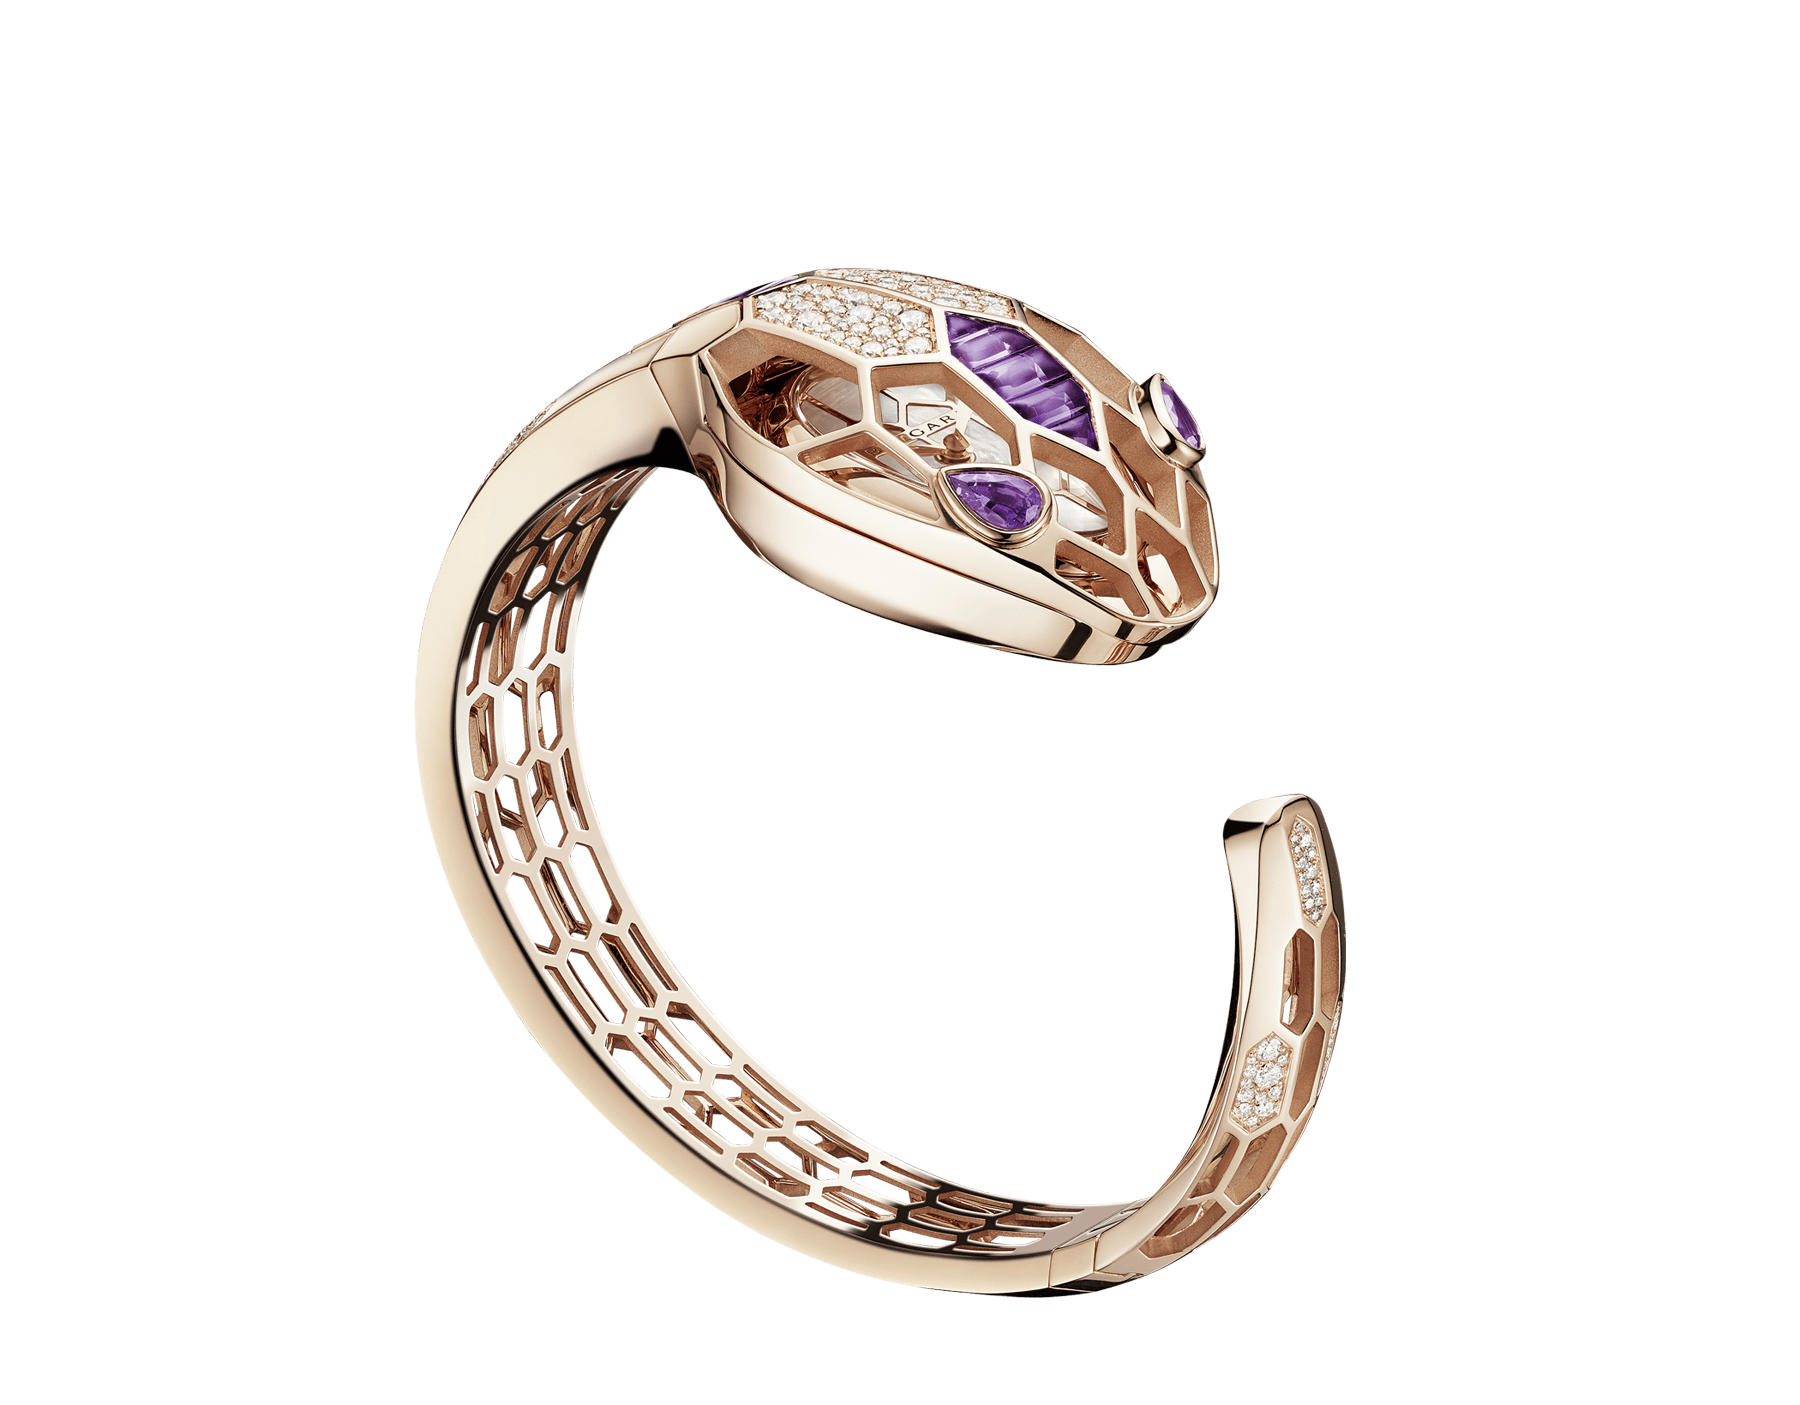 Serpenti Misteriosi Secret Watch in 18 kt rose gold case and bracelet both set with round brilliant-cut diamonds and baguette-cut amethysts, mother-of-pearl dial and pear shaped amethyst eyes. Small size 103054 image 2